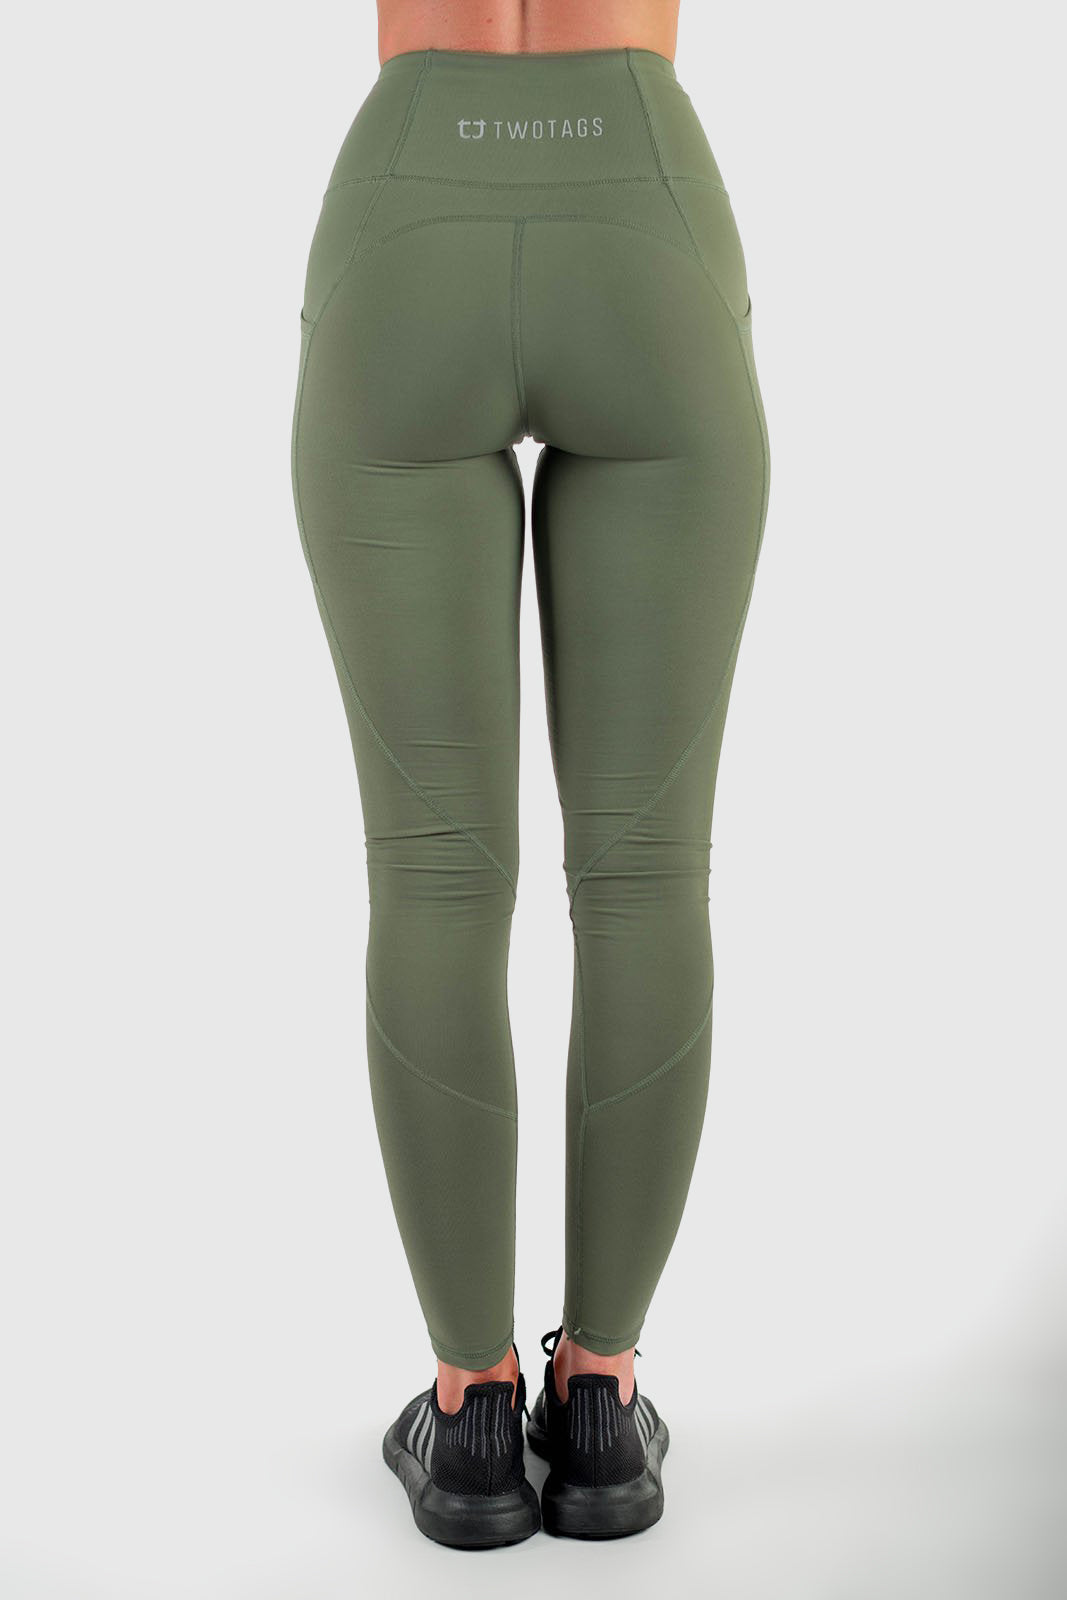 eb9f585933f72 Sweetheart Highwaisted Leggings - Olive – Twotags